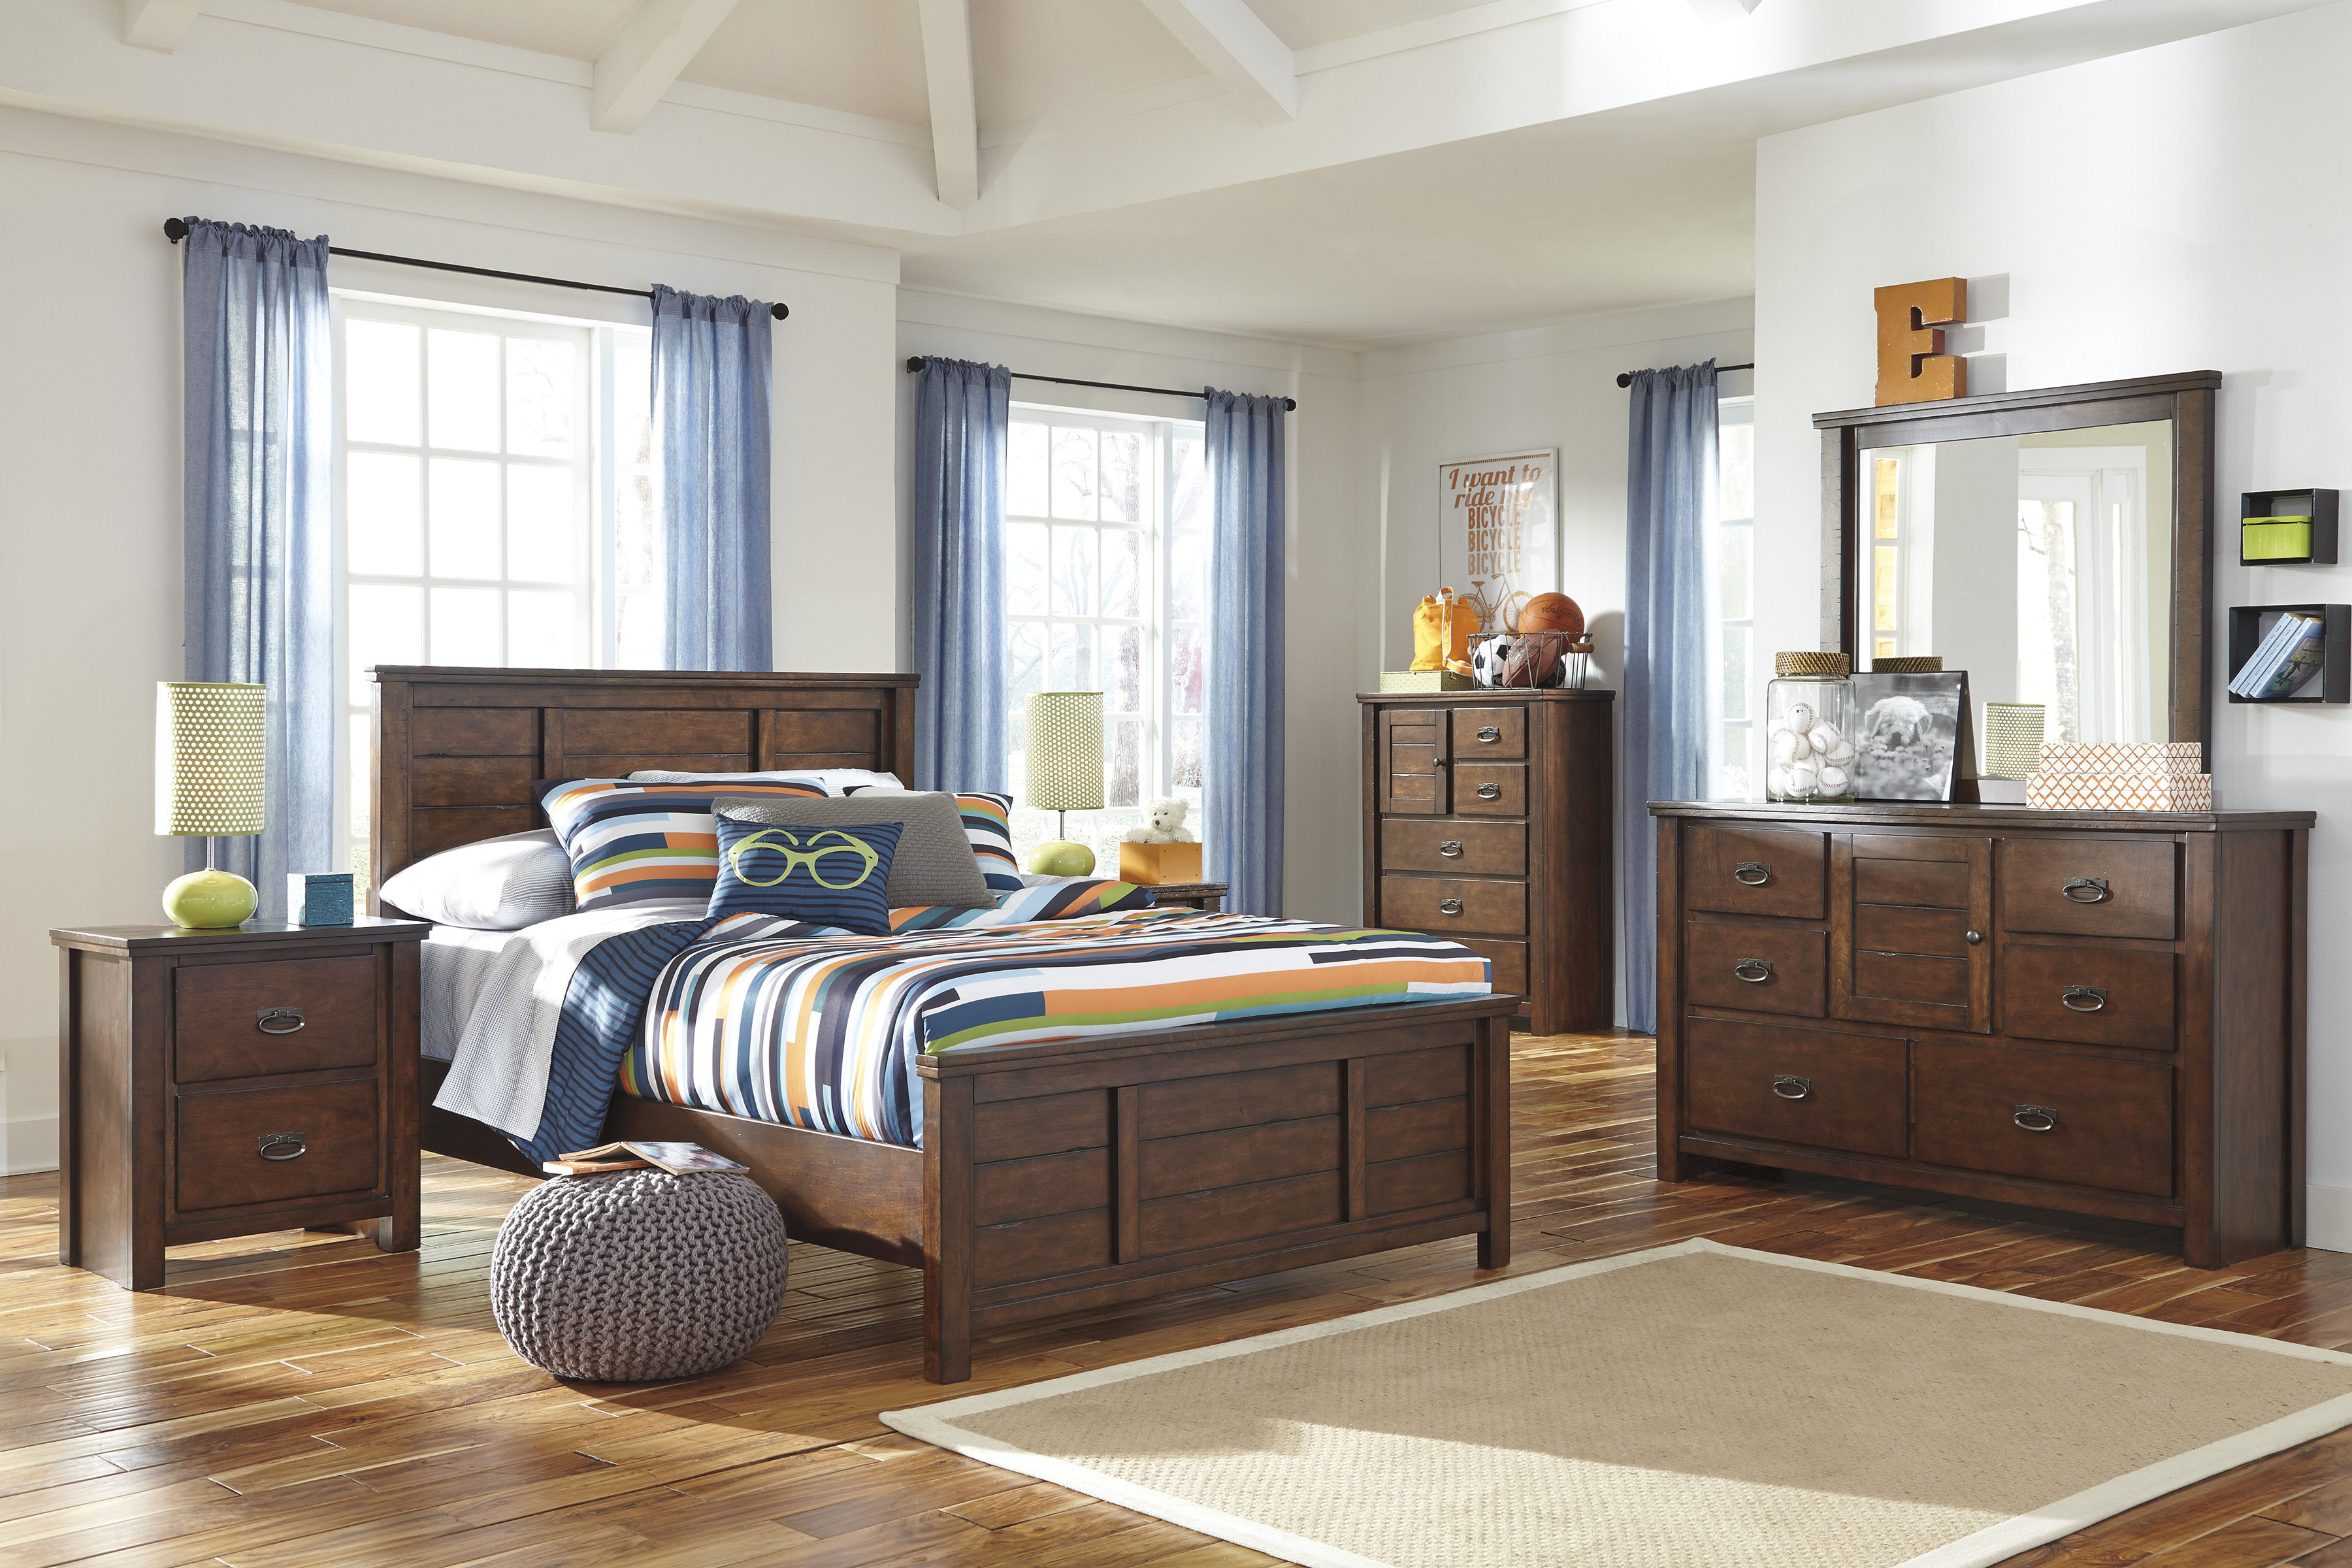 Ashley Furniture Ladiville Master Bedroom Set The Classy Home